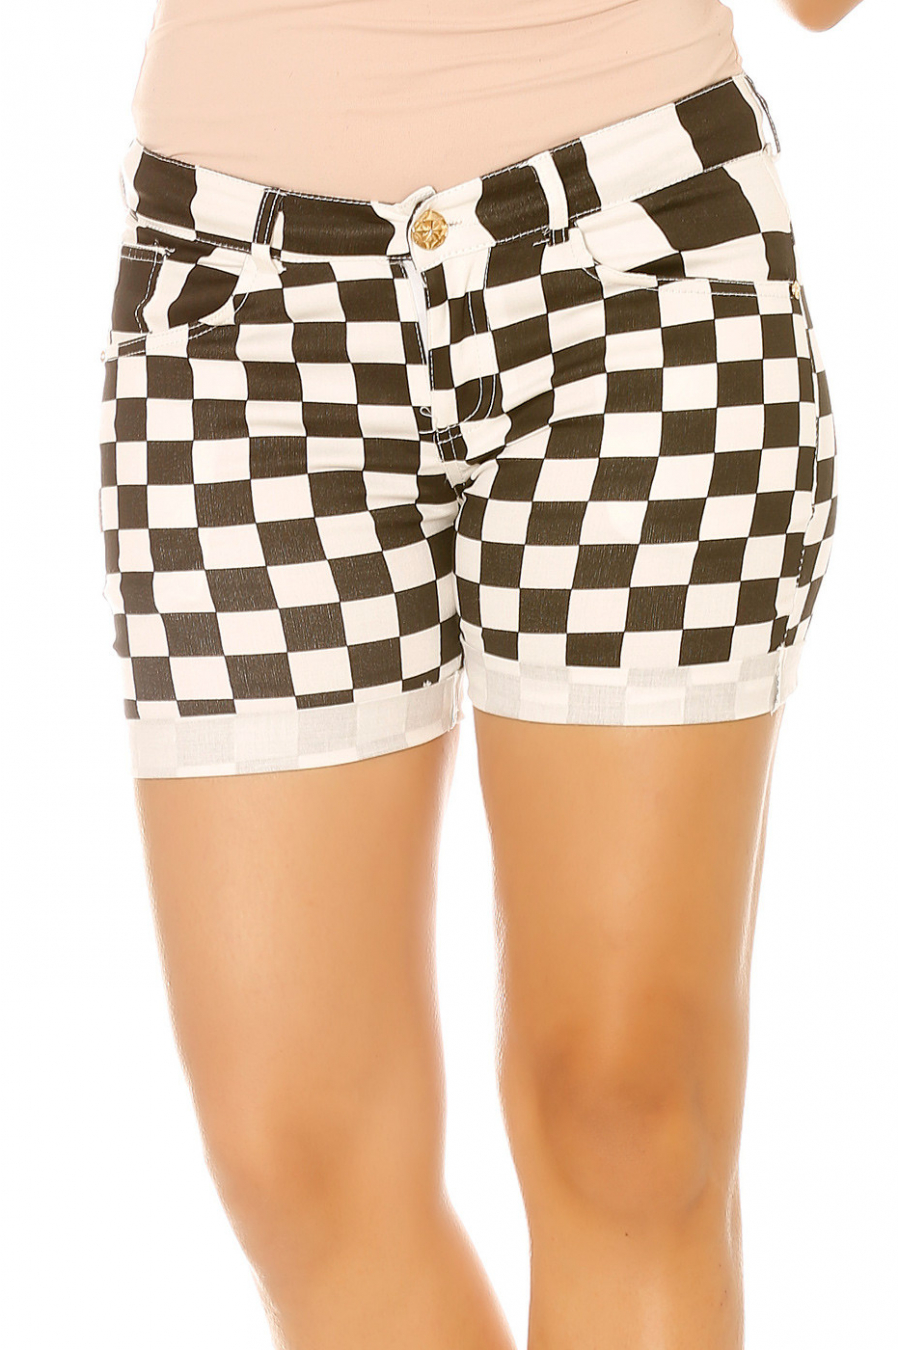 Black and white shorts with trendy checks. Fashion 856-1